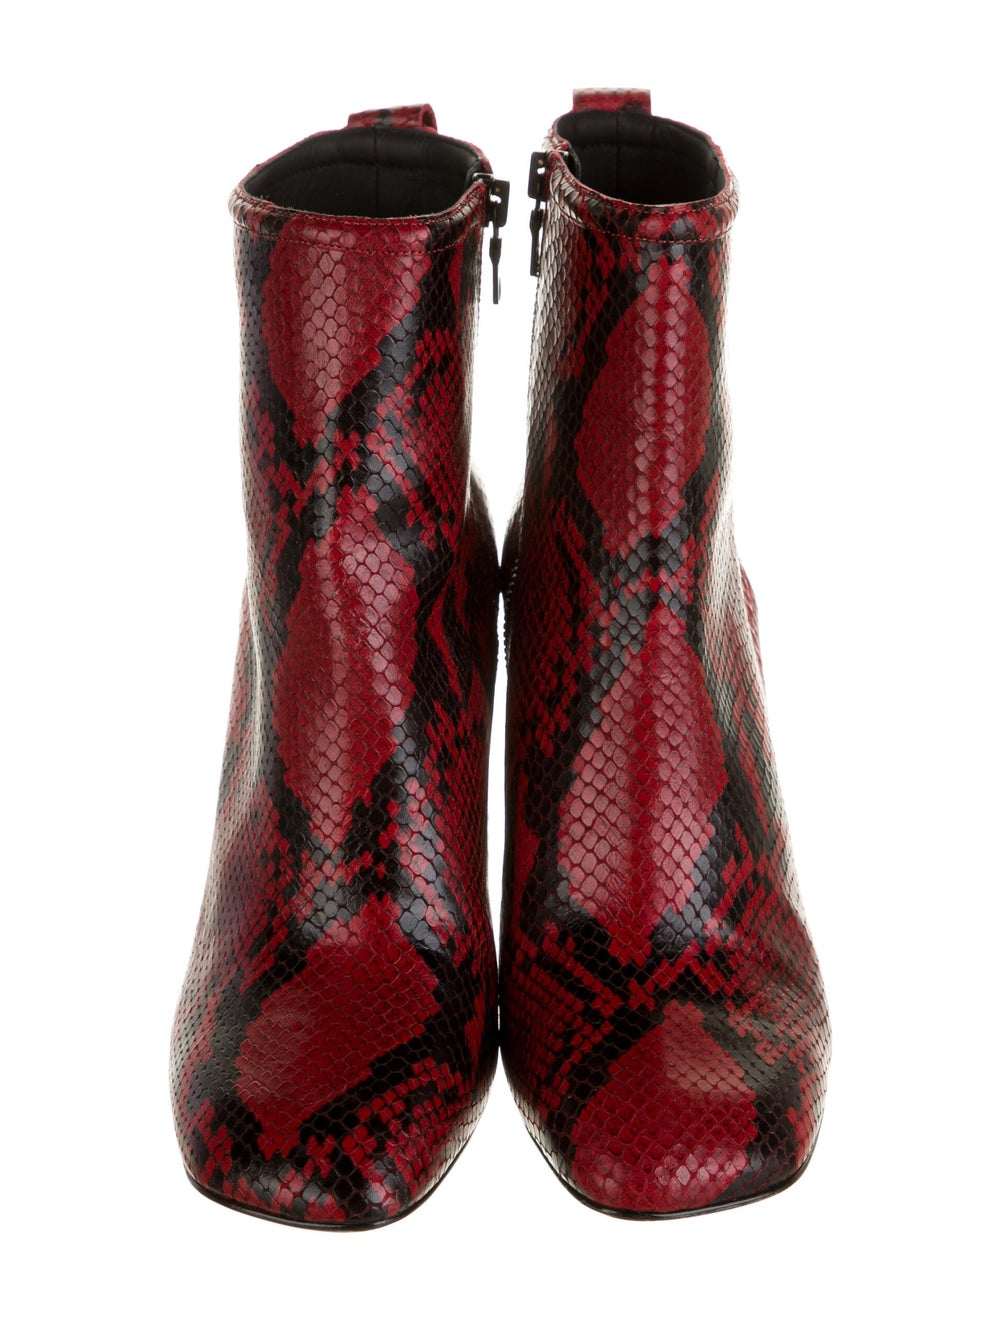 Rag & Bone Embossed Leather Boots Red - image 3